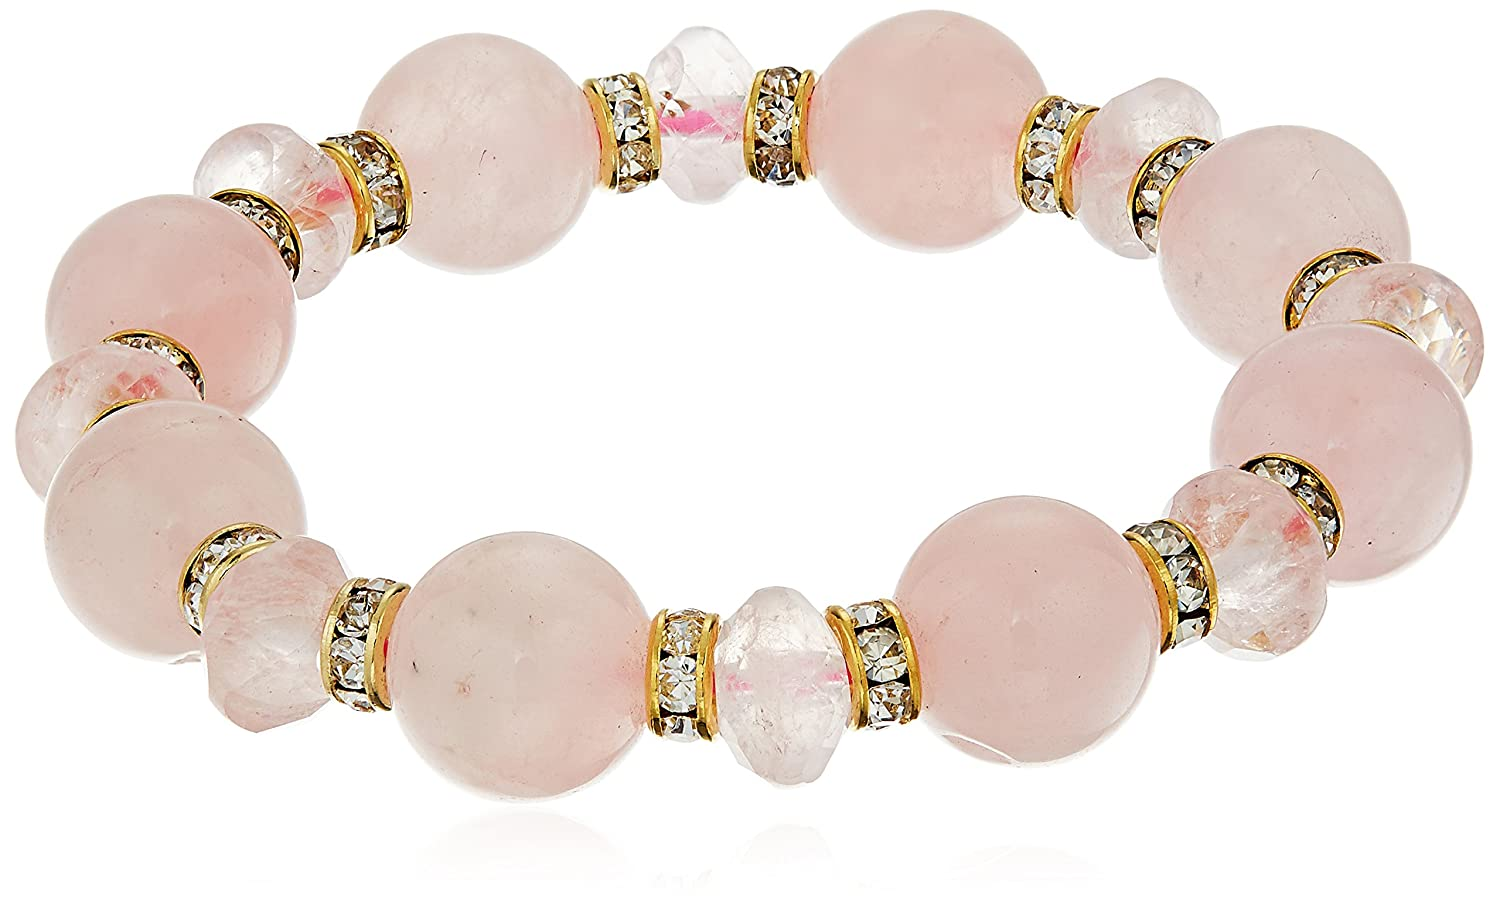 Gold Tone Cubic Zirconia Rondelles with Rose Quartz Round Beads and Faceted Rondelles Stretch Bracelet, 7.5 7.5 Lita Trading Corp LT7514-B